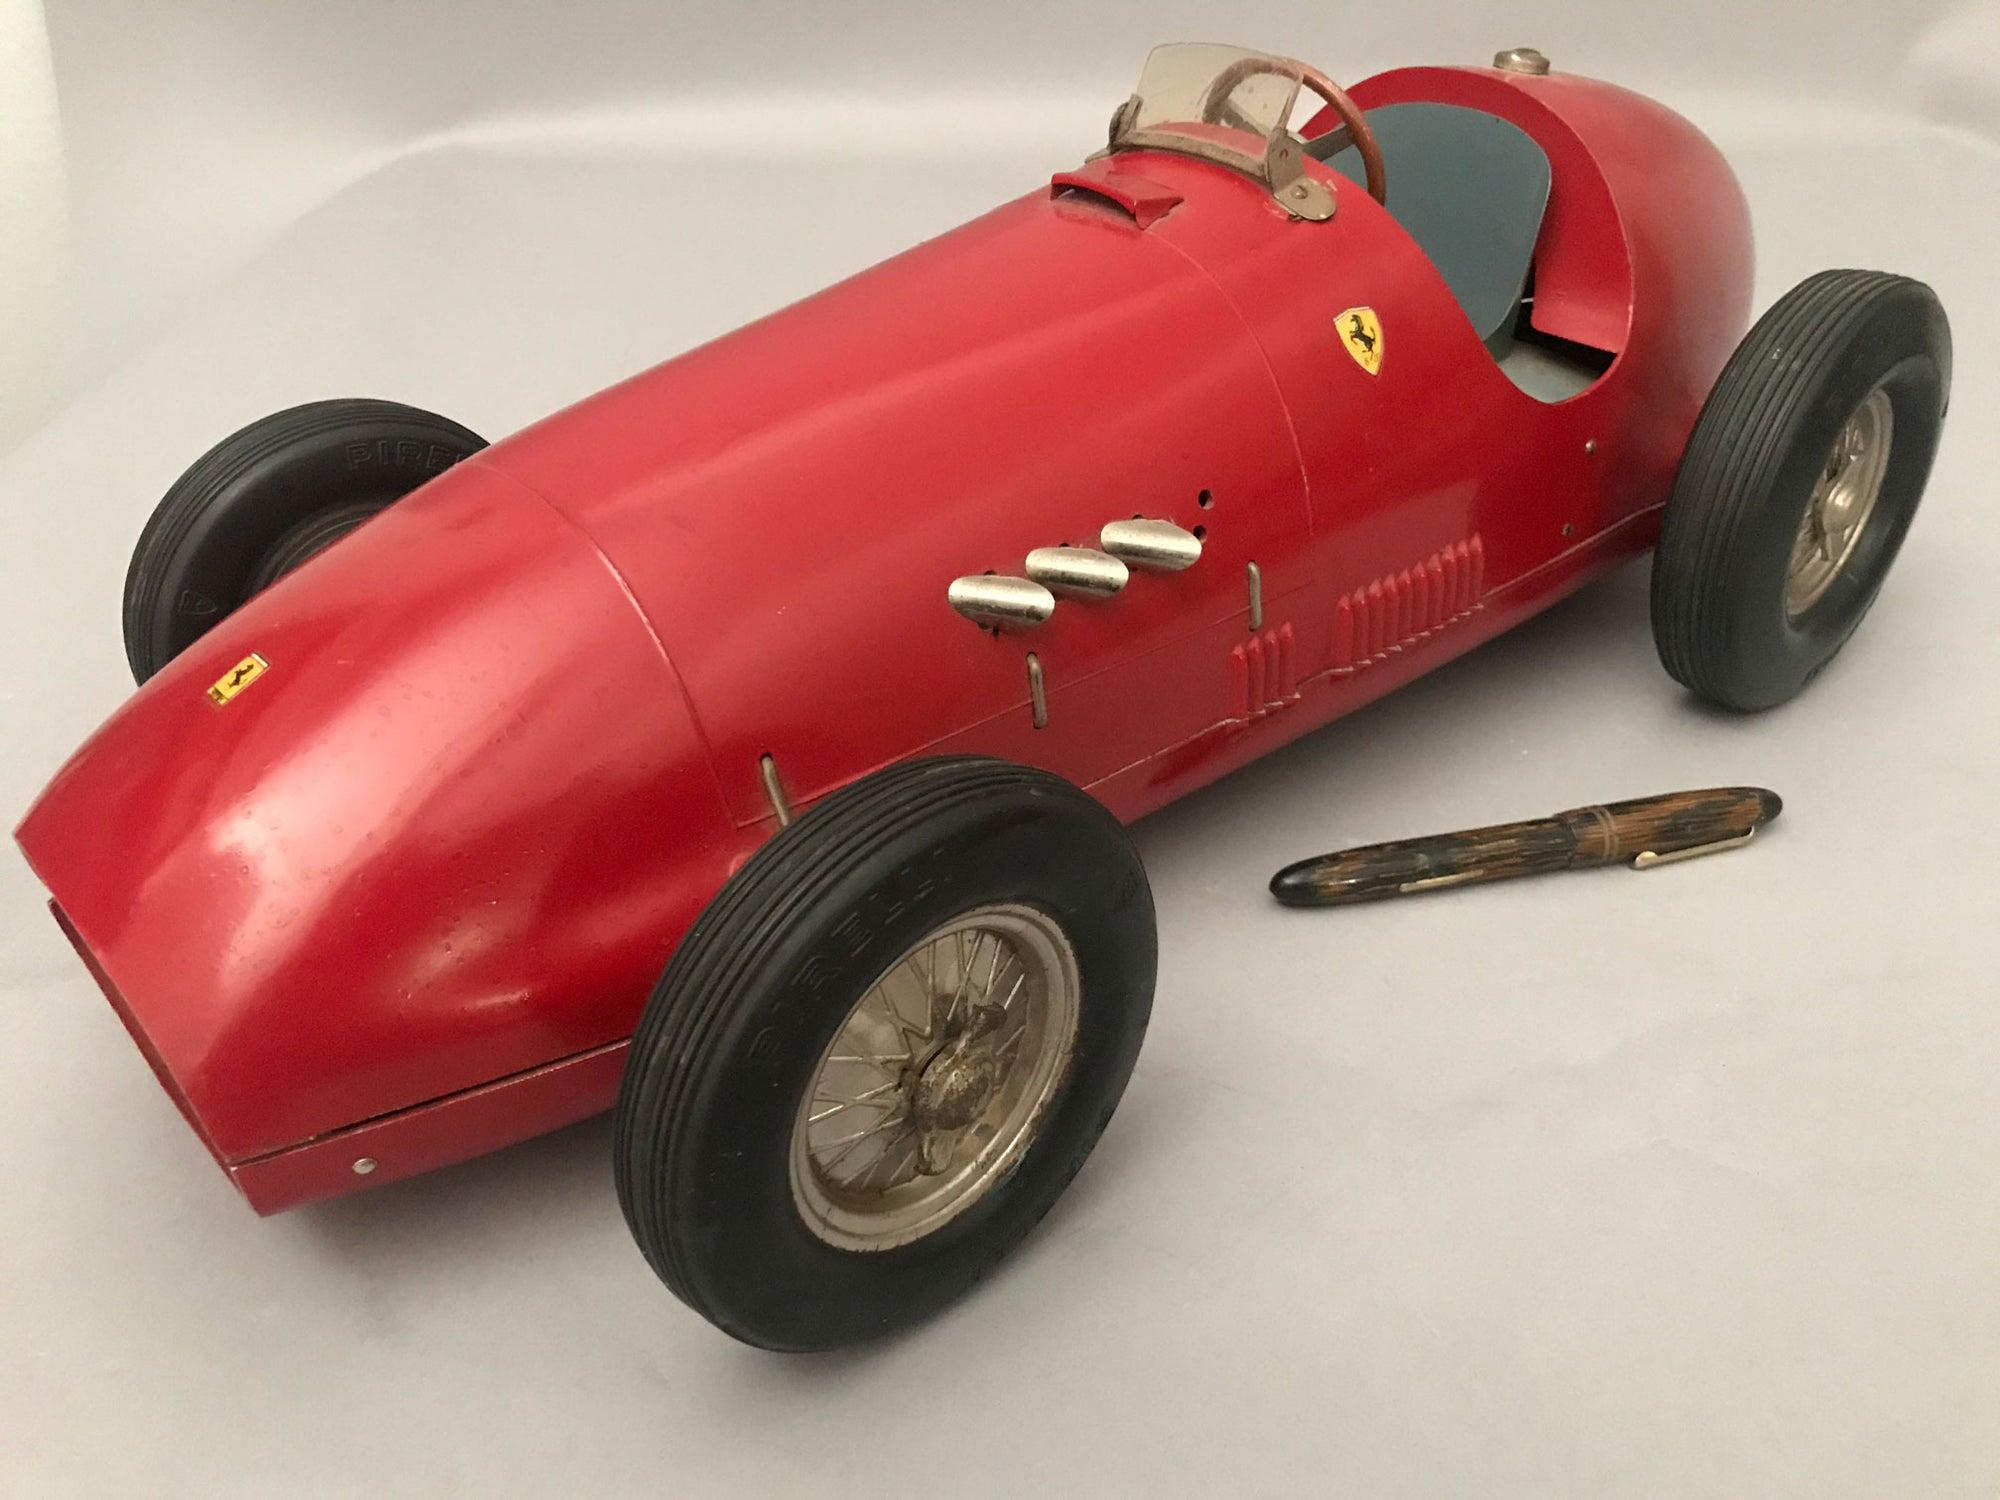 Ferrari 500 F II toy car - first Ferrari toy ever made